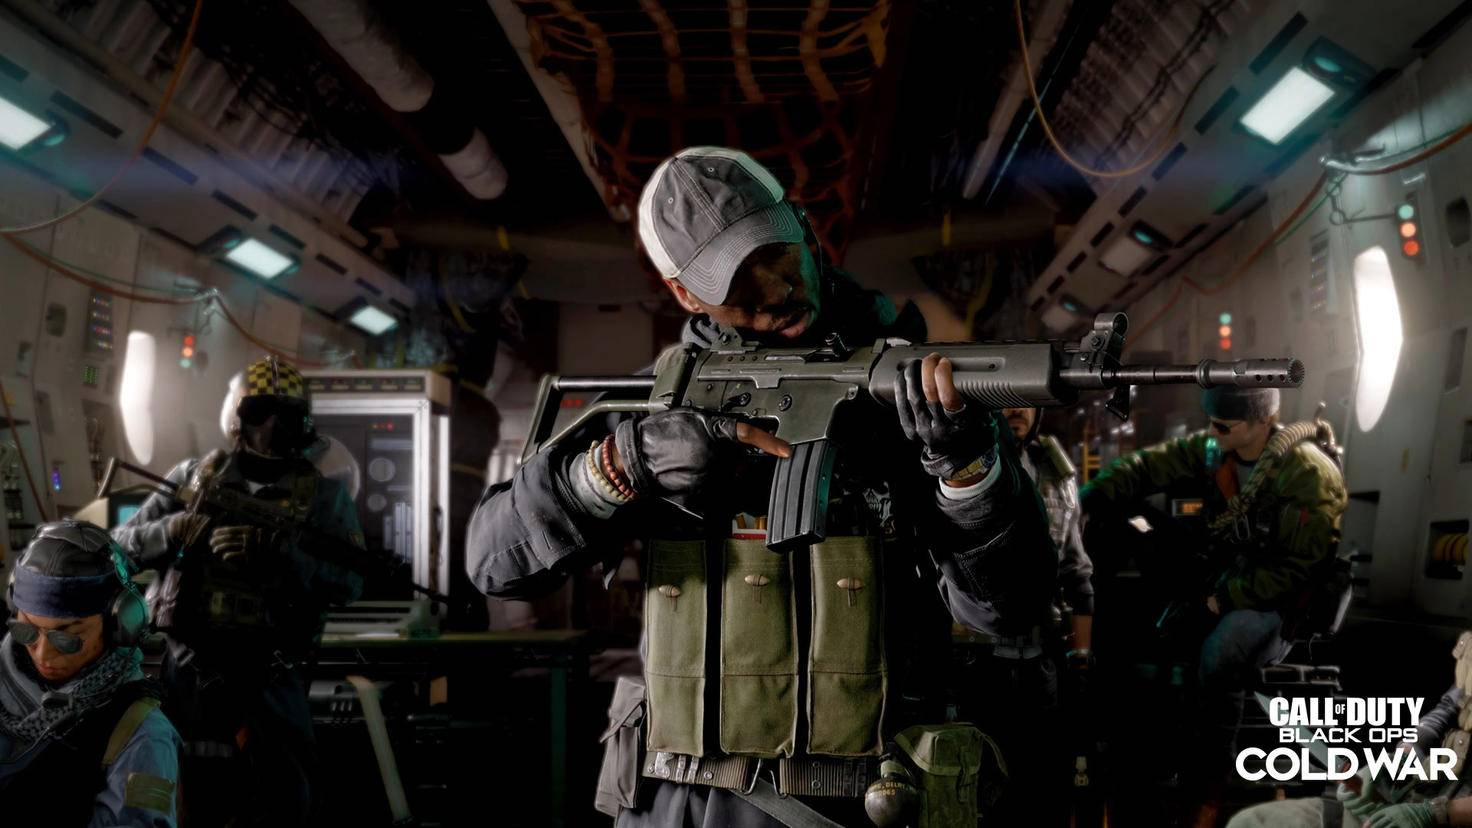 call-of-duty-black-ops-cold-war-operator